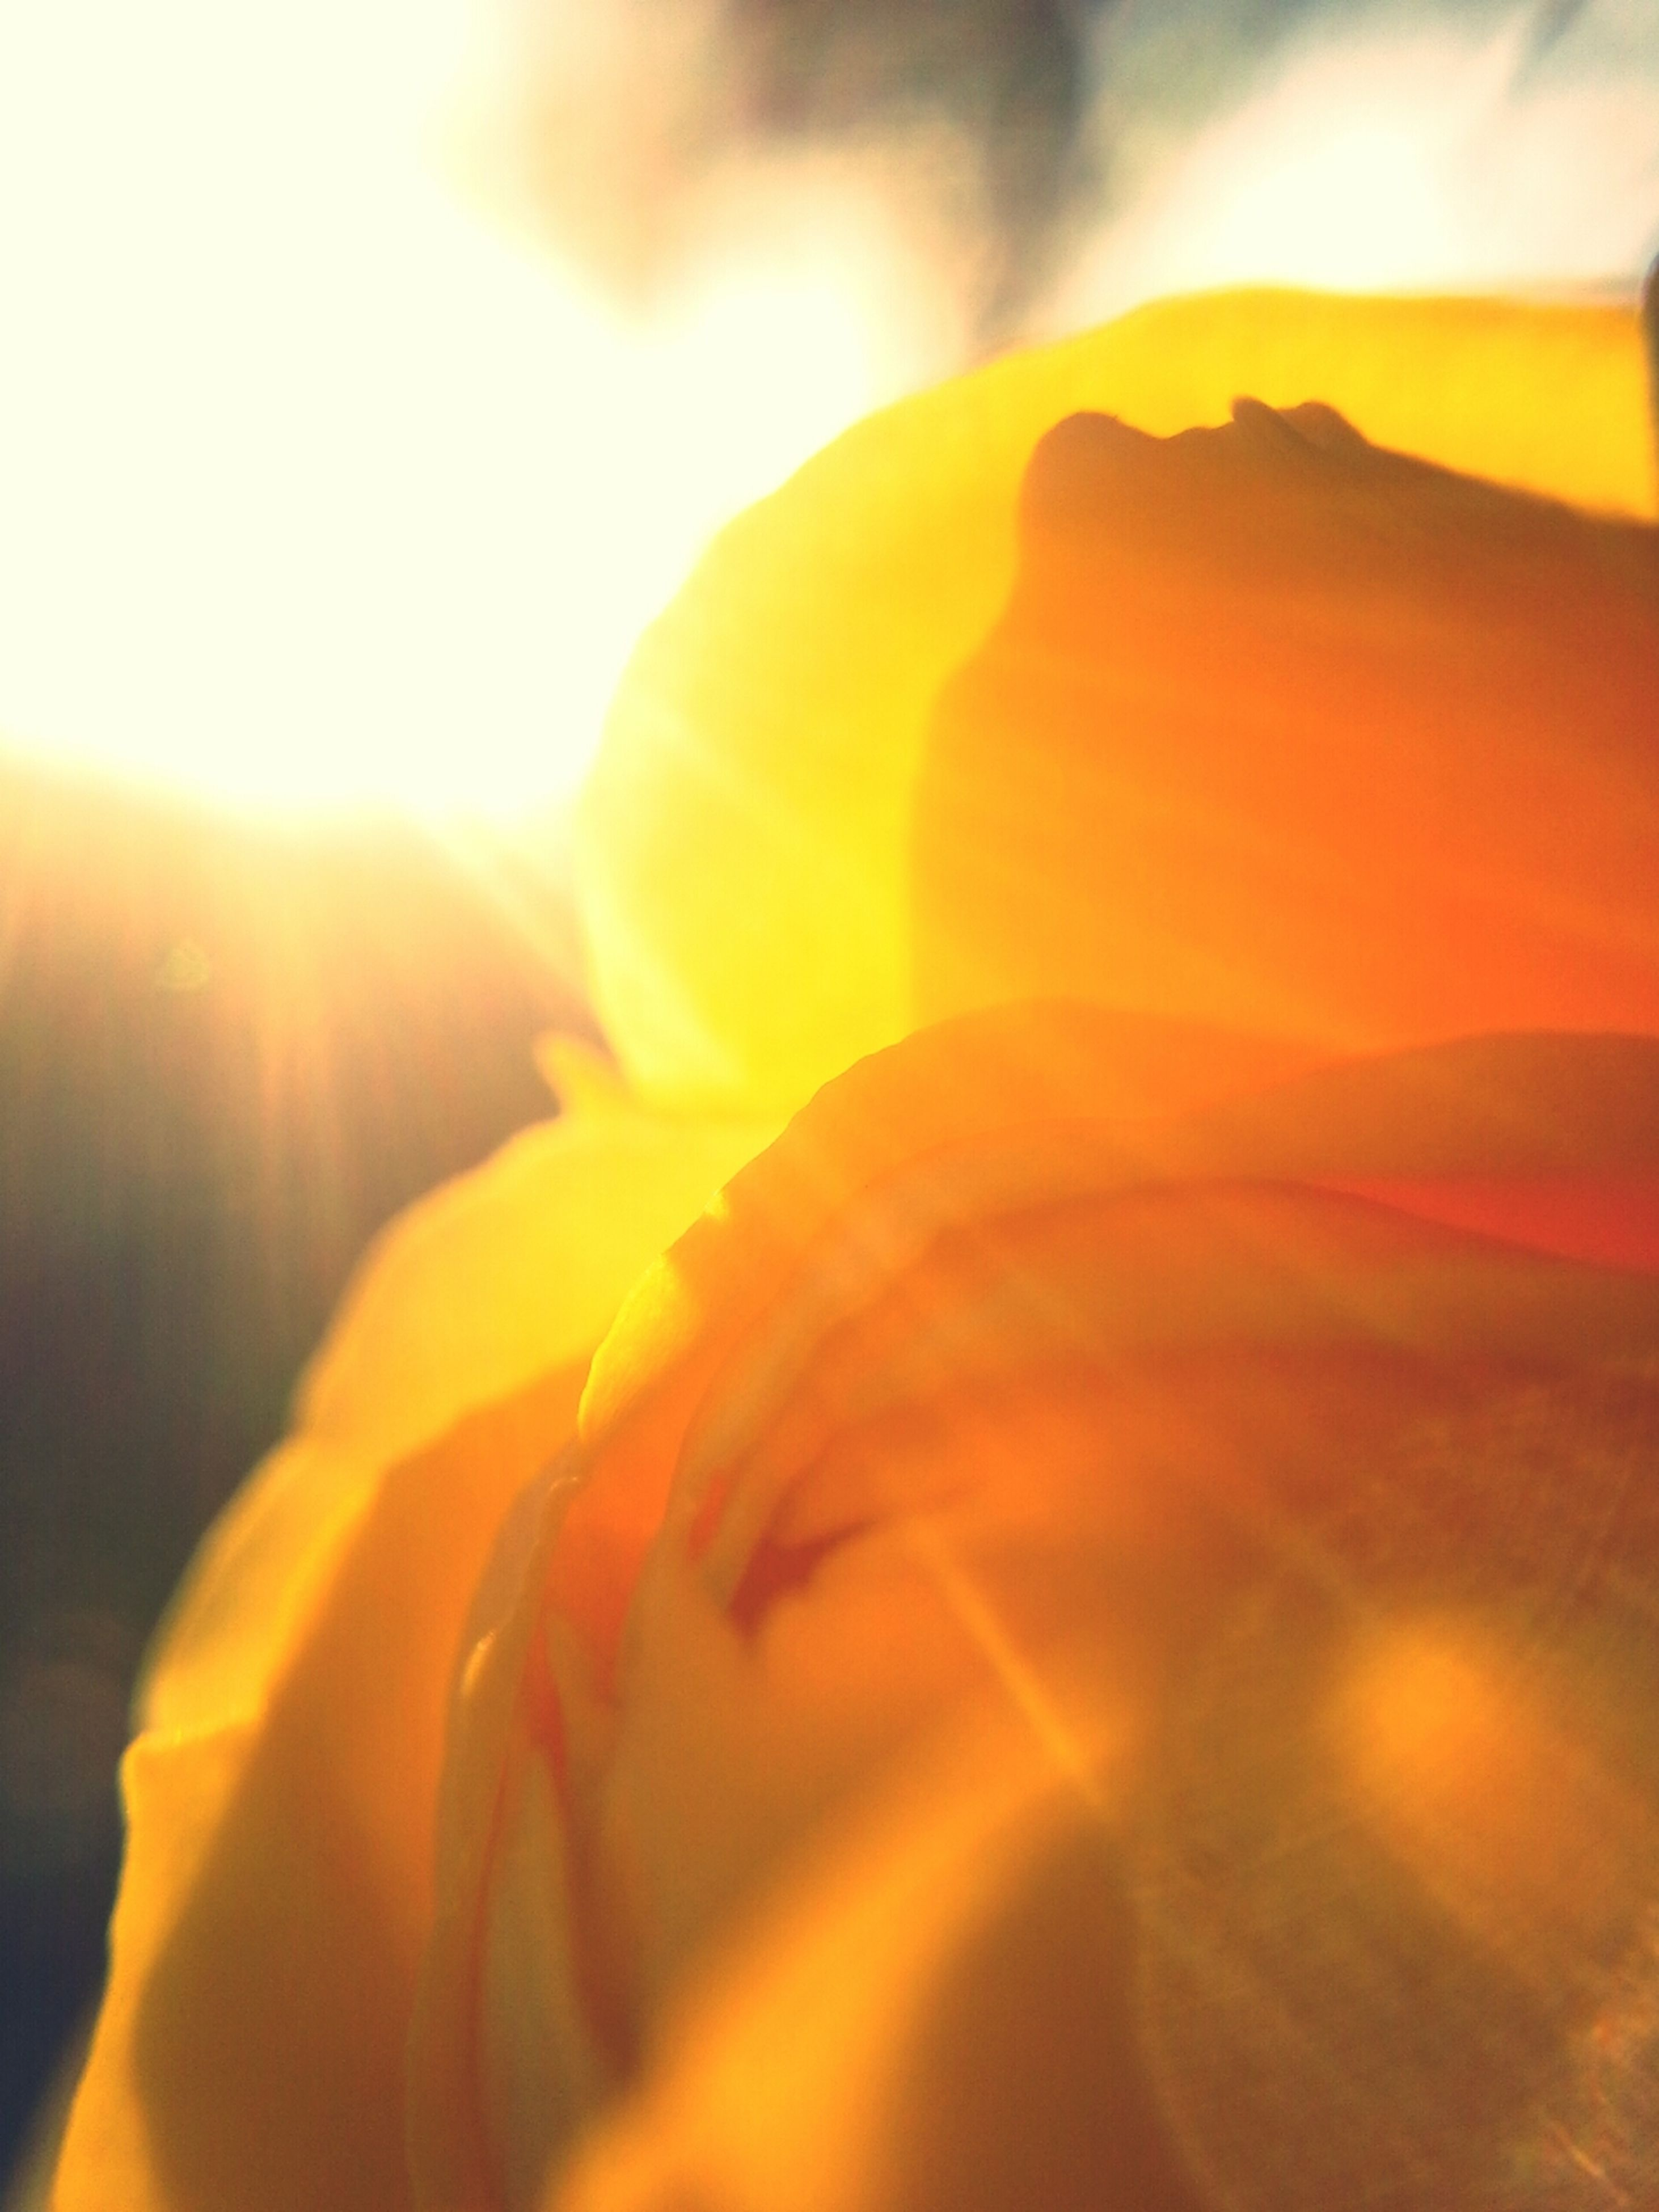 petal, beauty in nature, close-up, flower, orange color, nature, fragility, freshness, yellow, flower head, sunlight, sun, growth, focus on foreground, sunset, single flower, outdoors, sunbeam, lens flare, no people